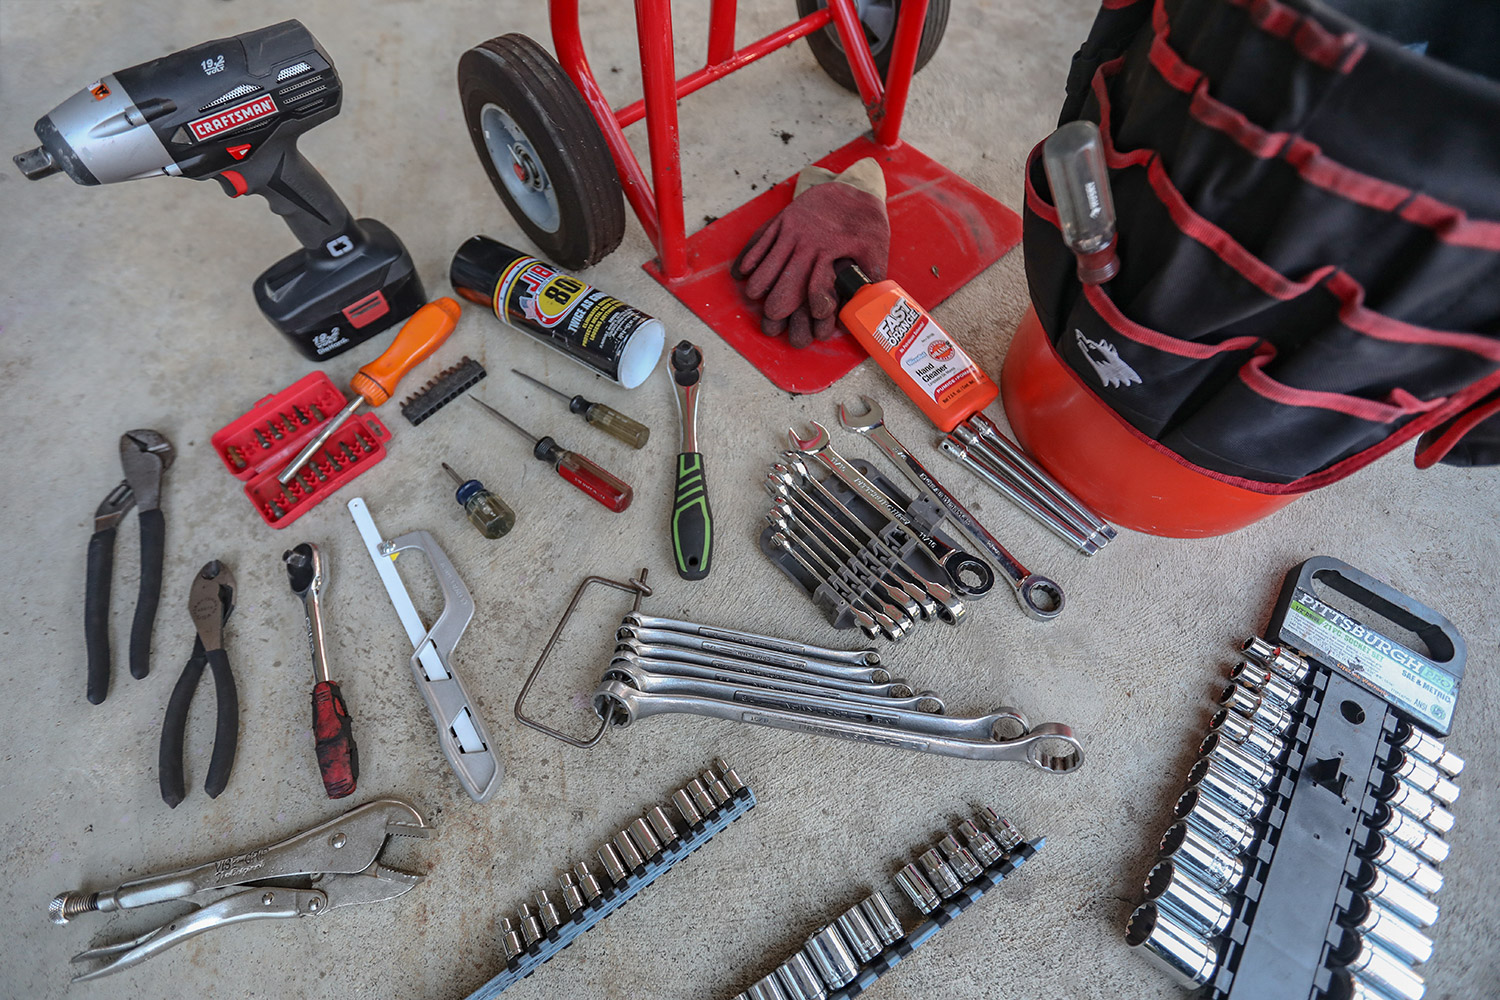 Must-haves for your junkyard tool kit